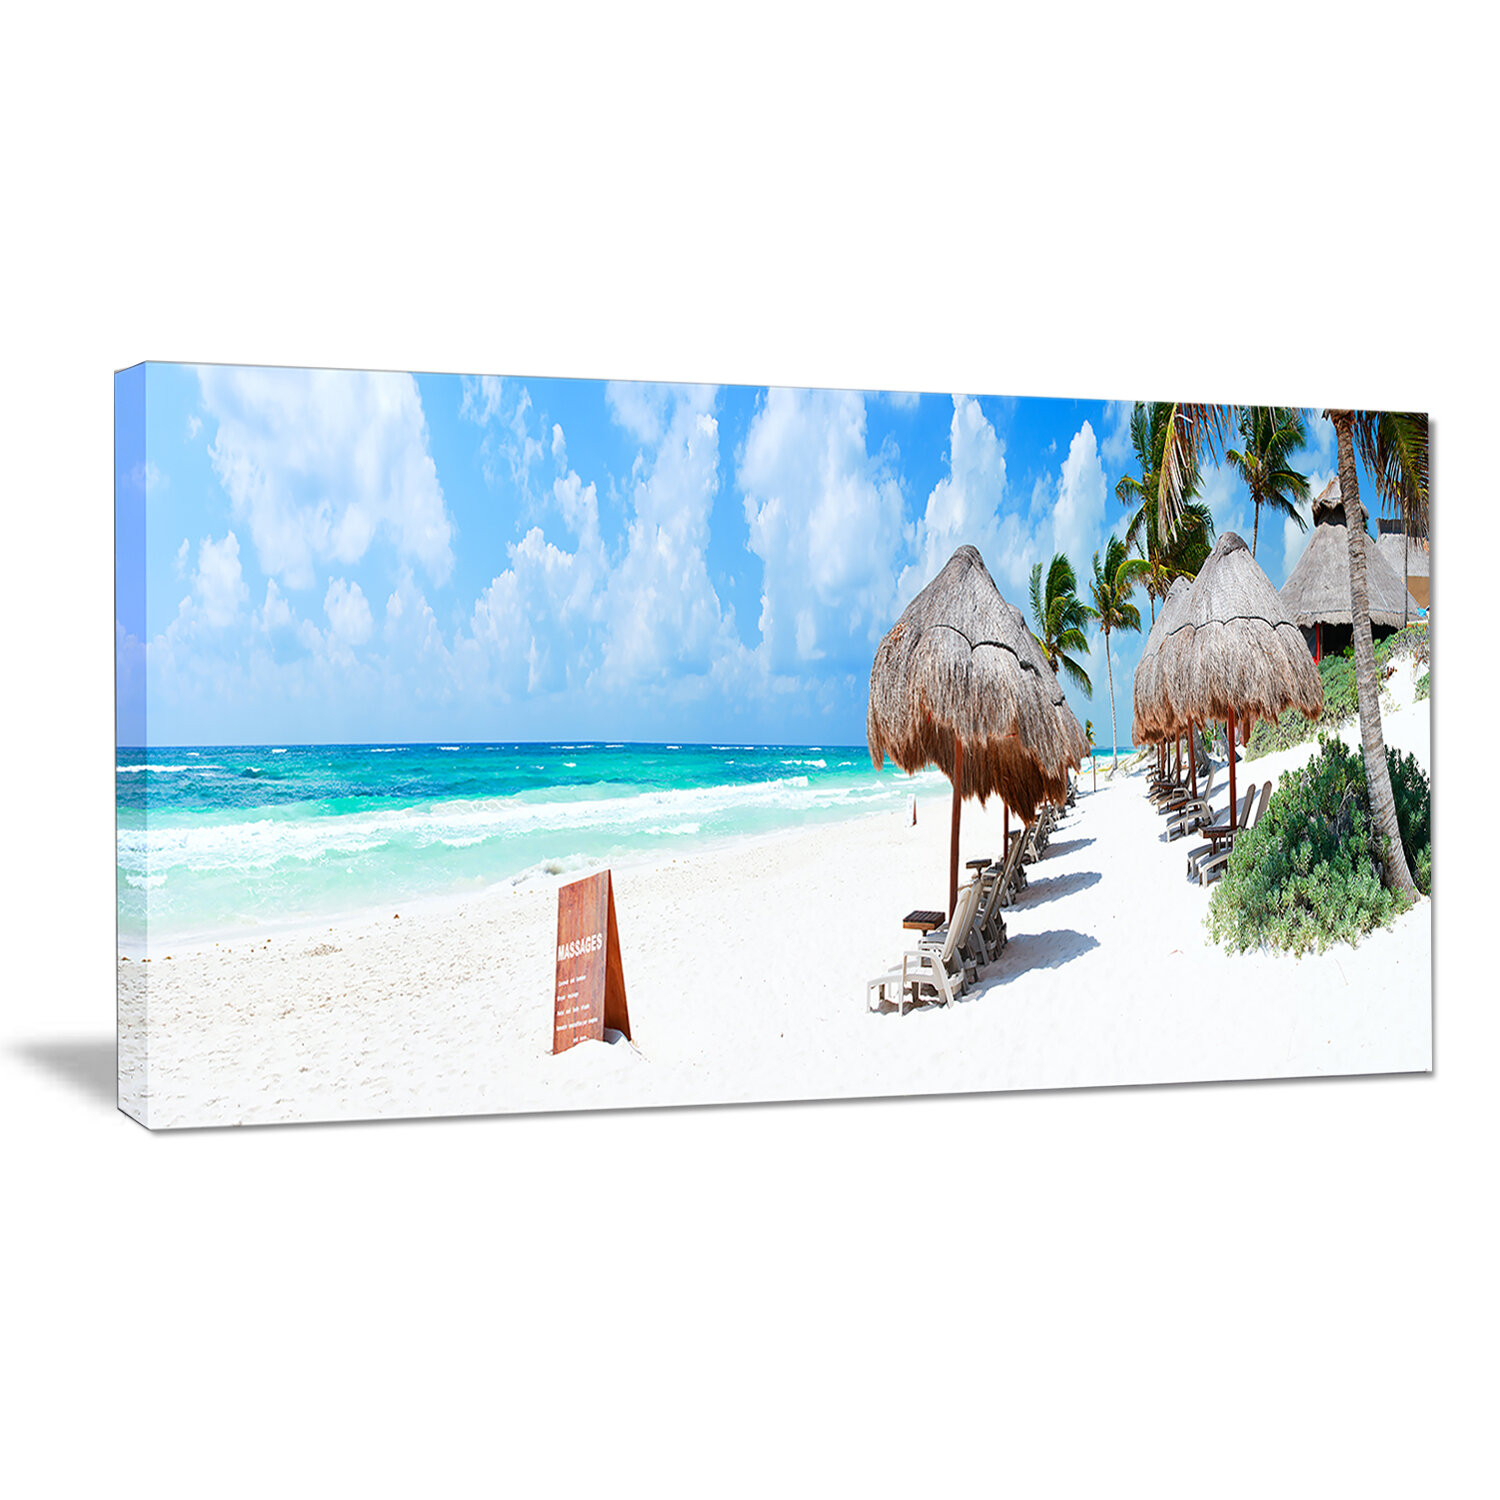 Designart Caribbean Coast In Tulum Mexico Photographic Print On Wrapped Canvas Wayfair